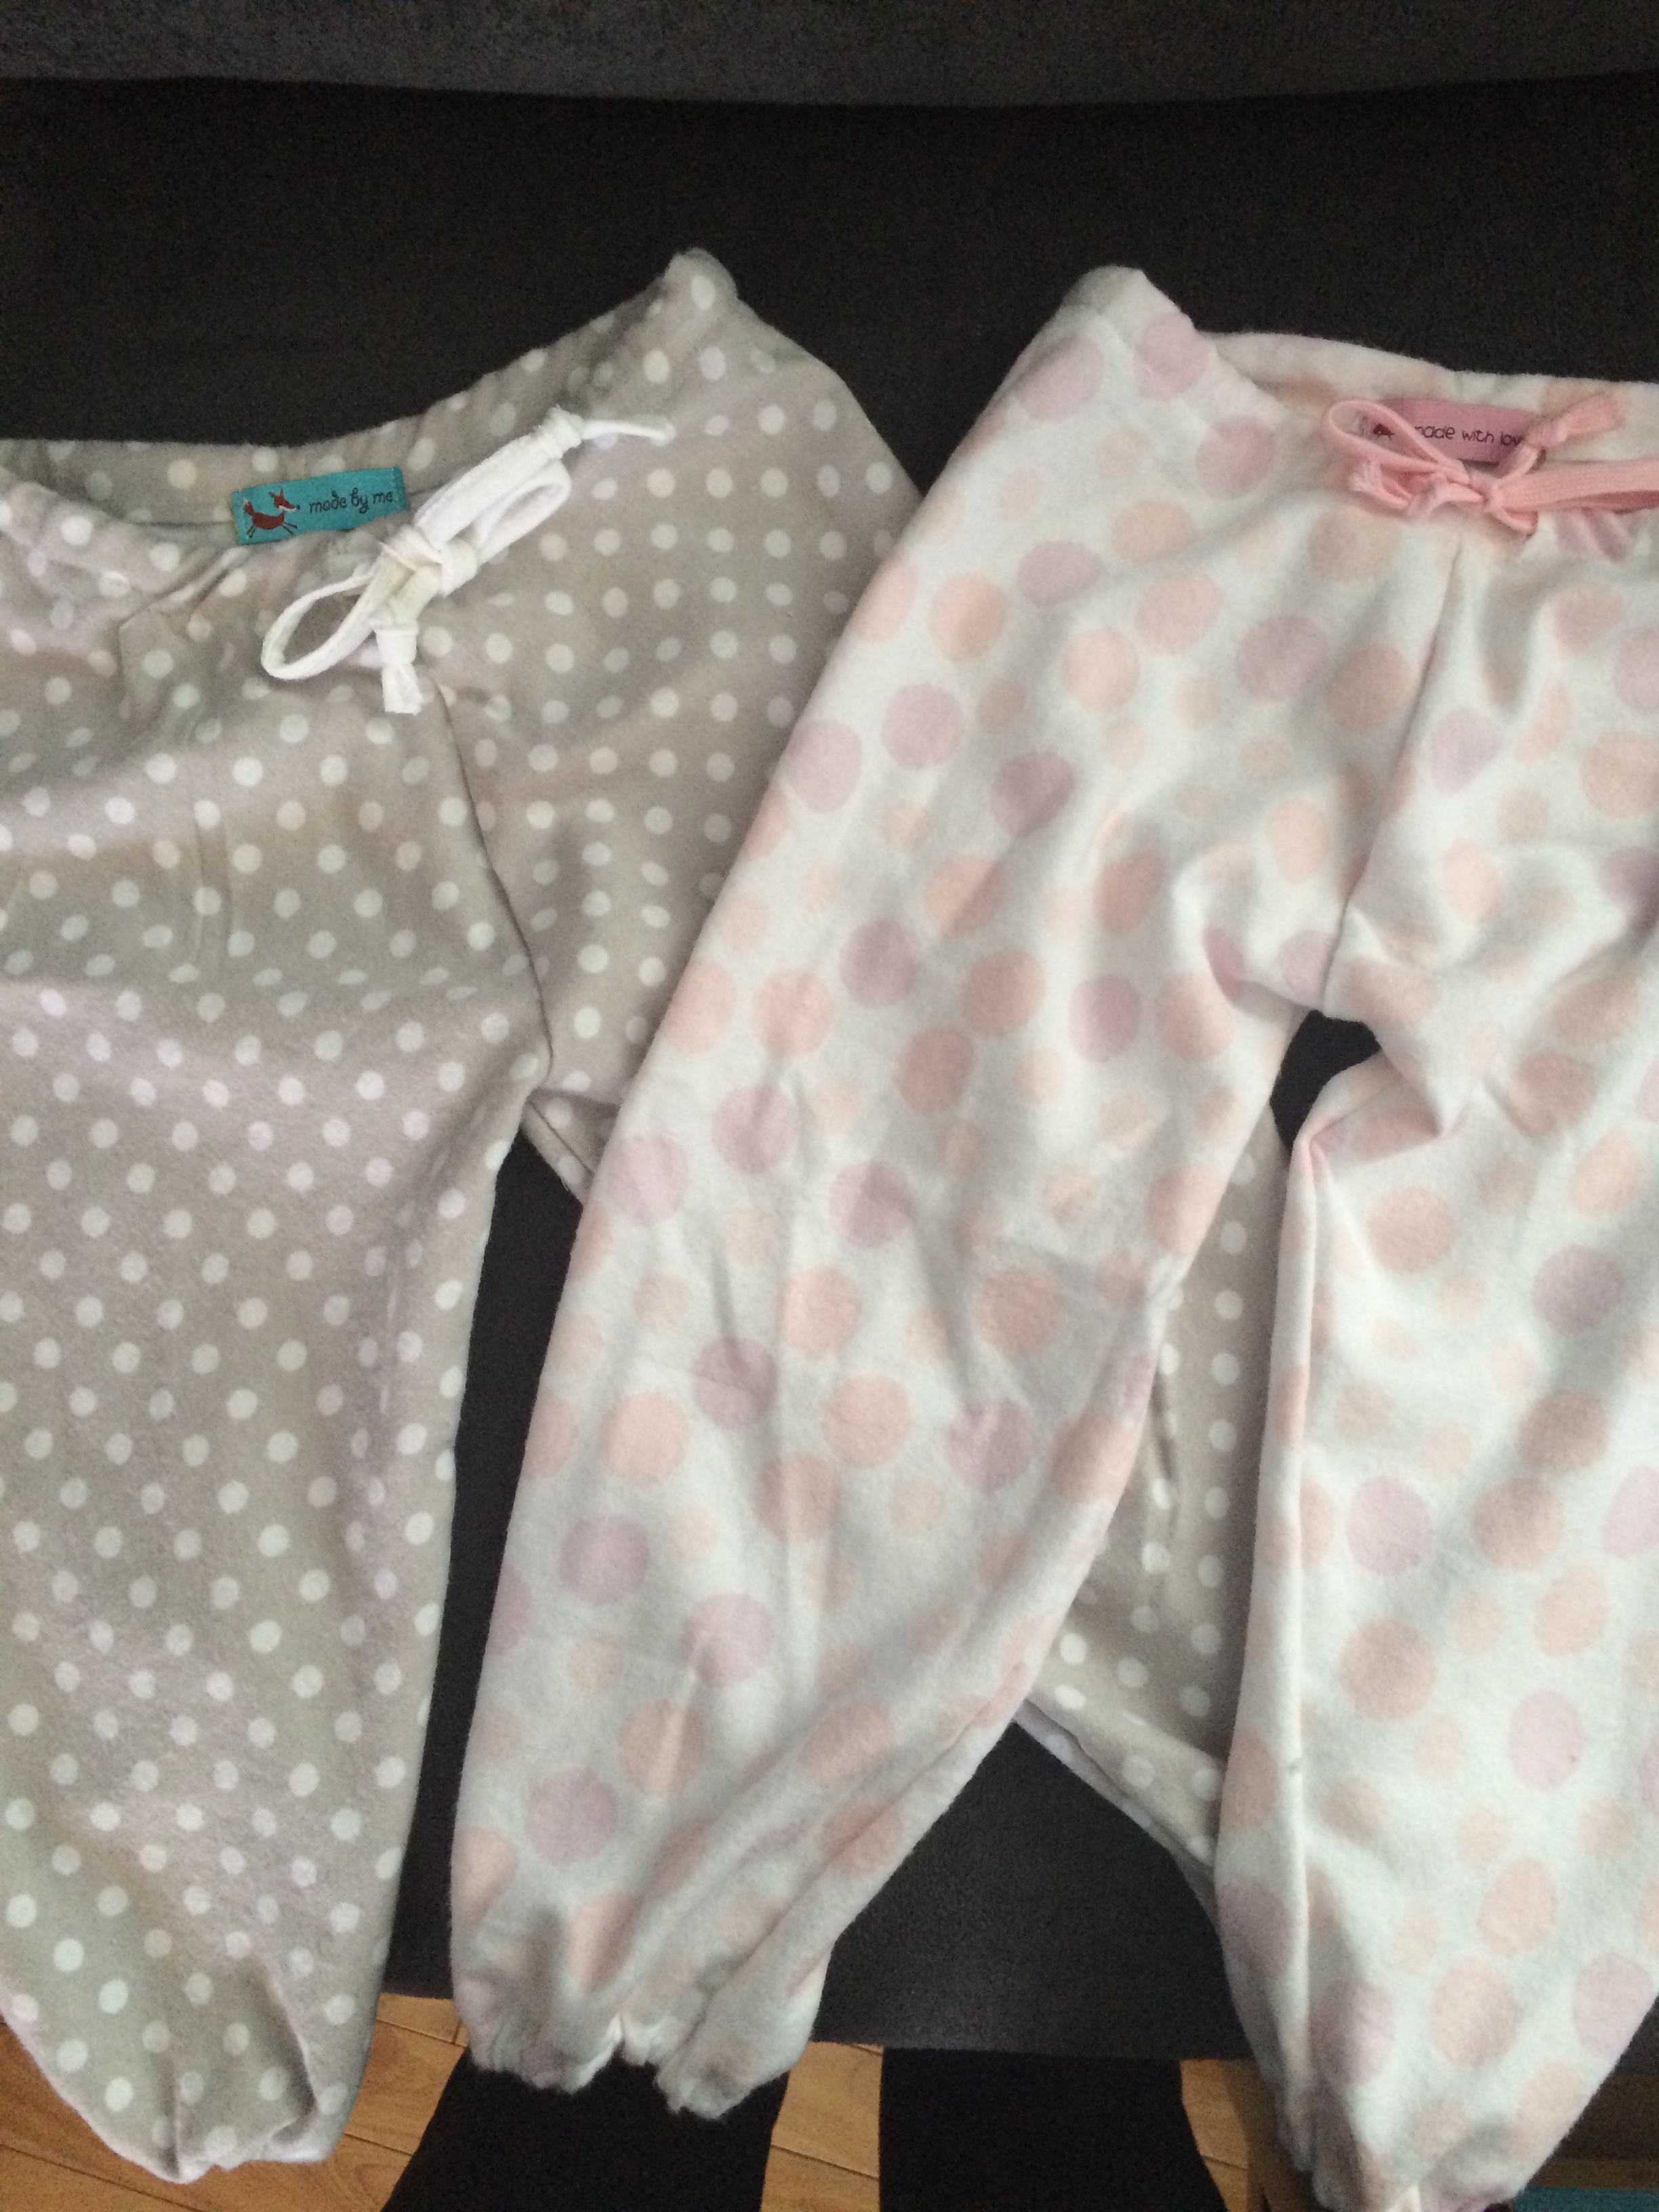 DIY Mommy and Me Pj pants